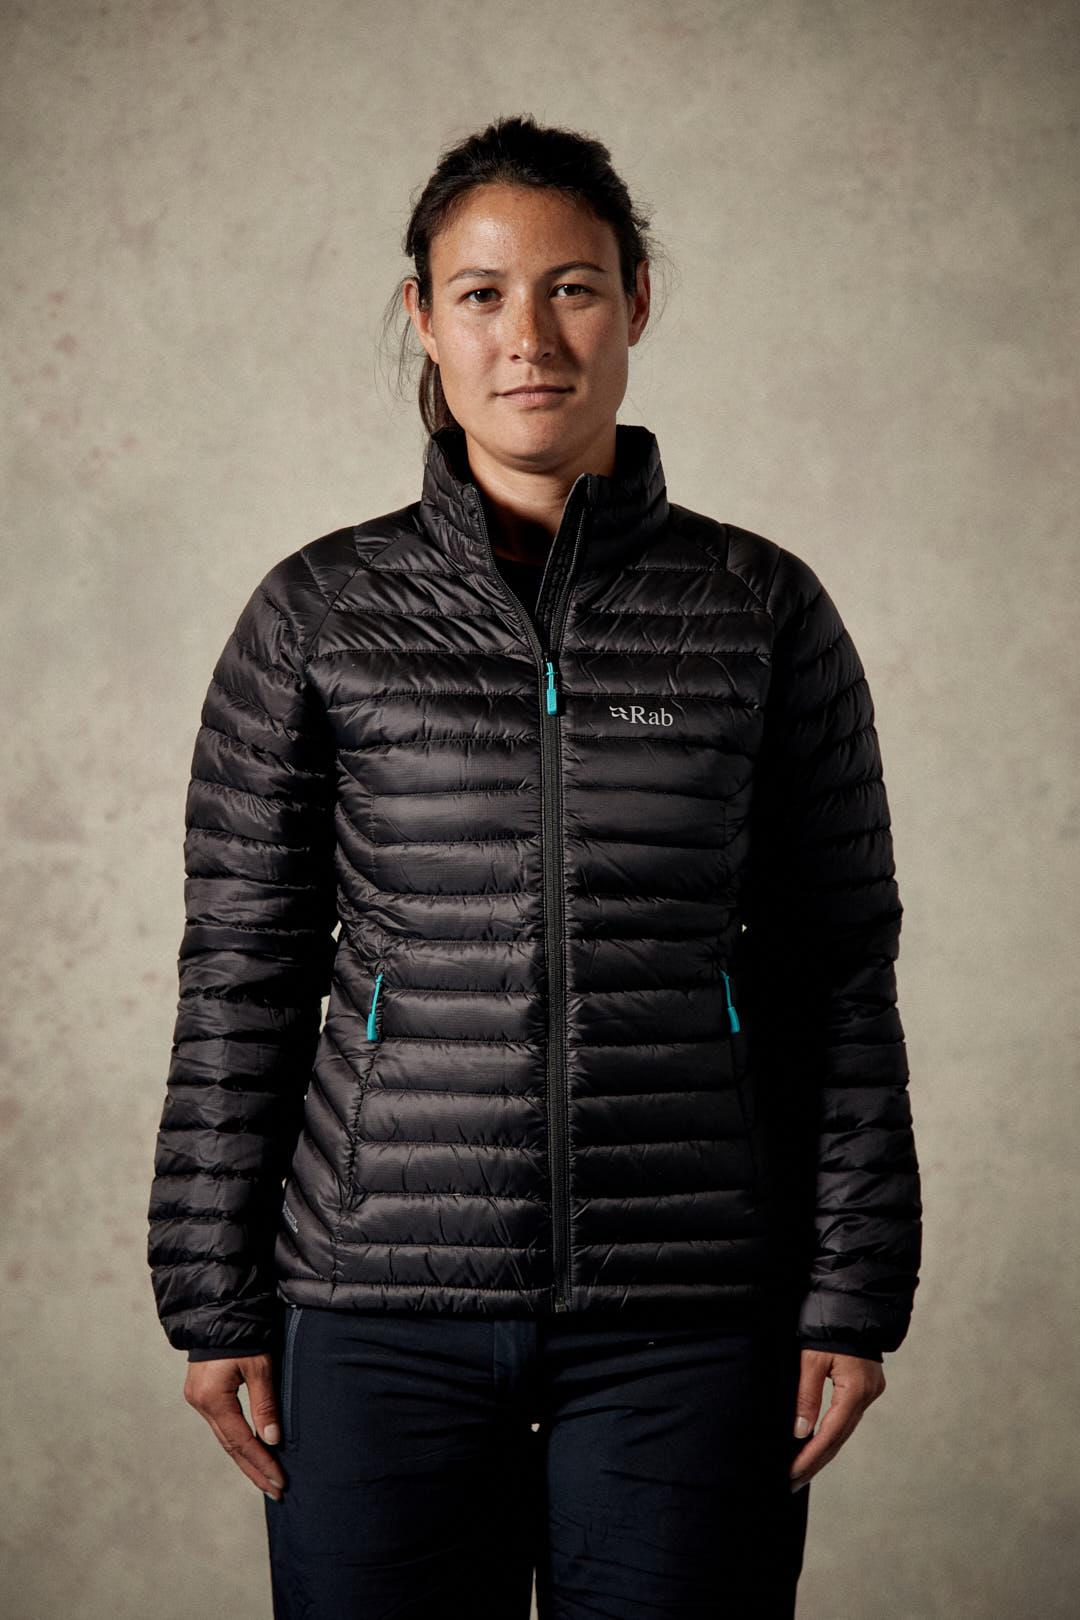 Rab Microlight Jacket for Ladies in Black / Seaglass